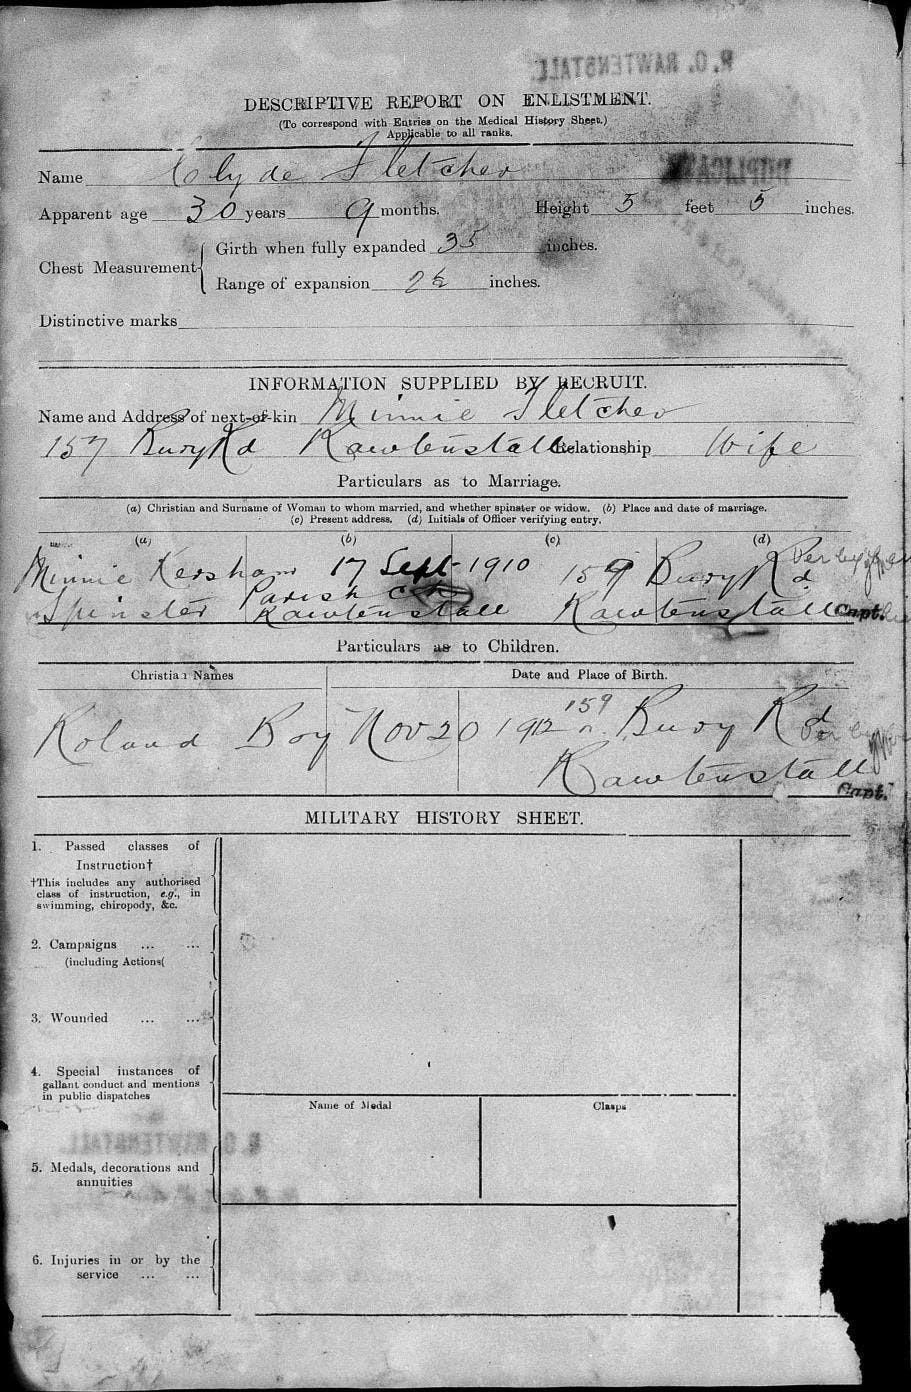 The same page of a soldier's enlistment before the damage was done to the document, British Army Service Records, http://findmypast.com, subscription database, accessed June 2017.